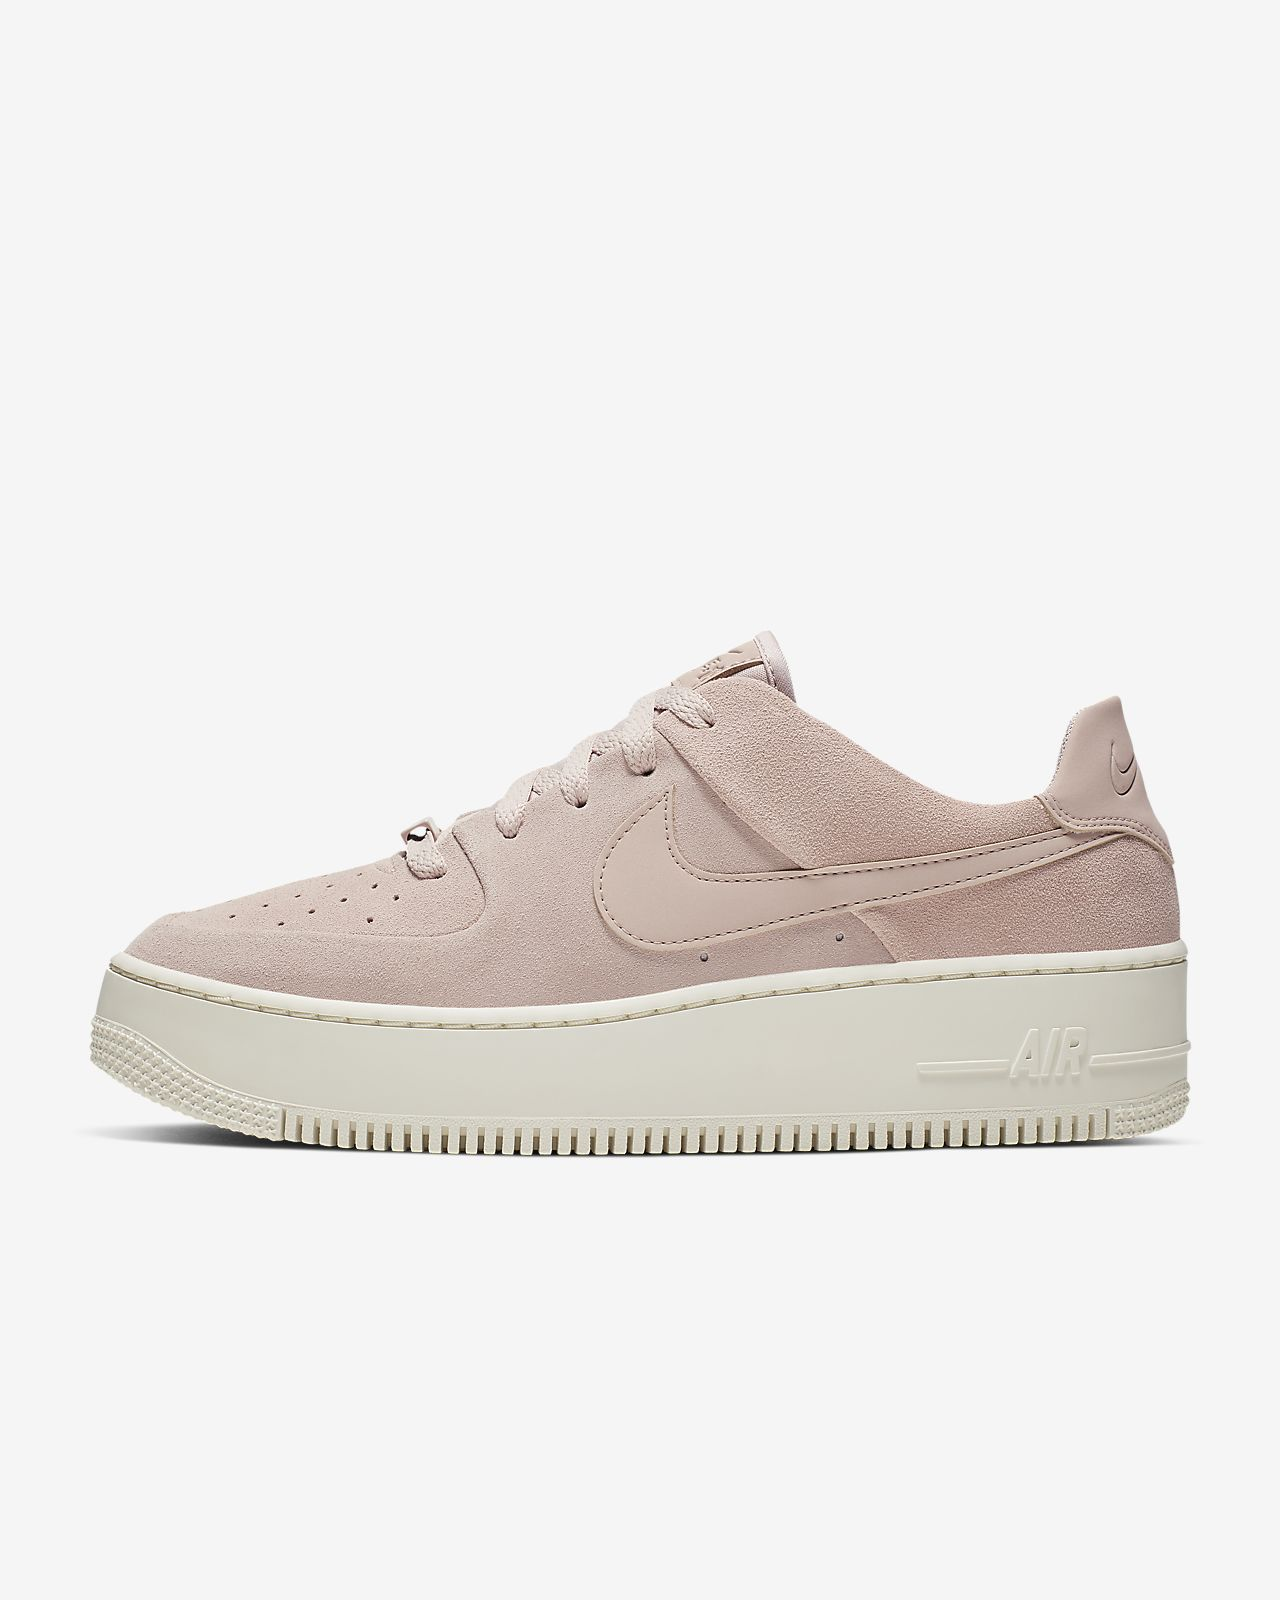 9e0d2ed3f57eb Nike Air Force 1 Sage Low Women s Shoe. Nike.com CA